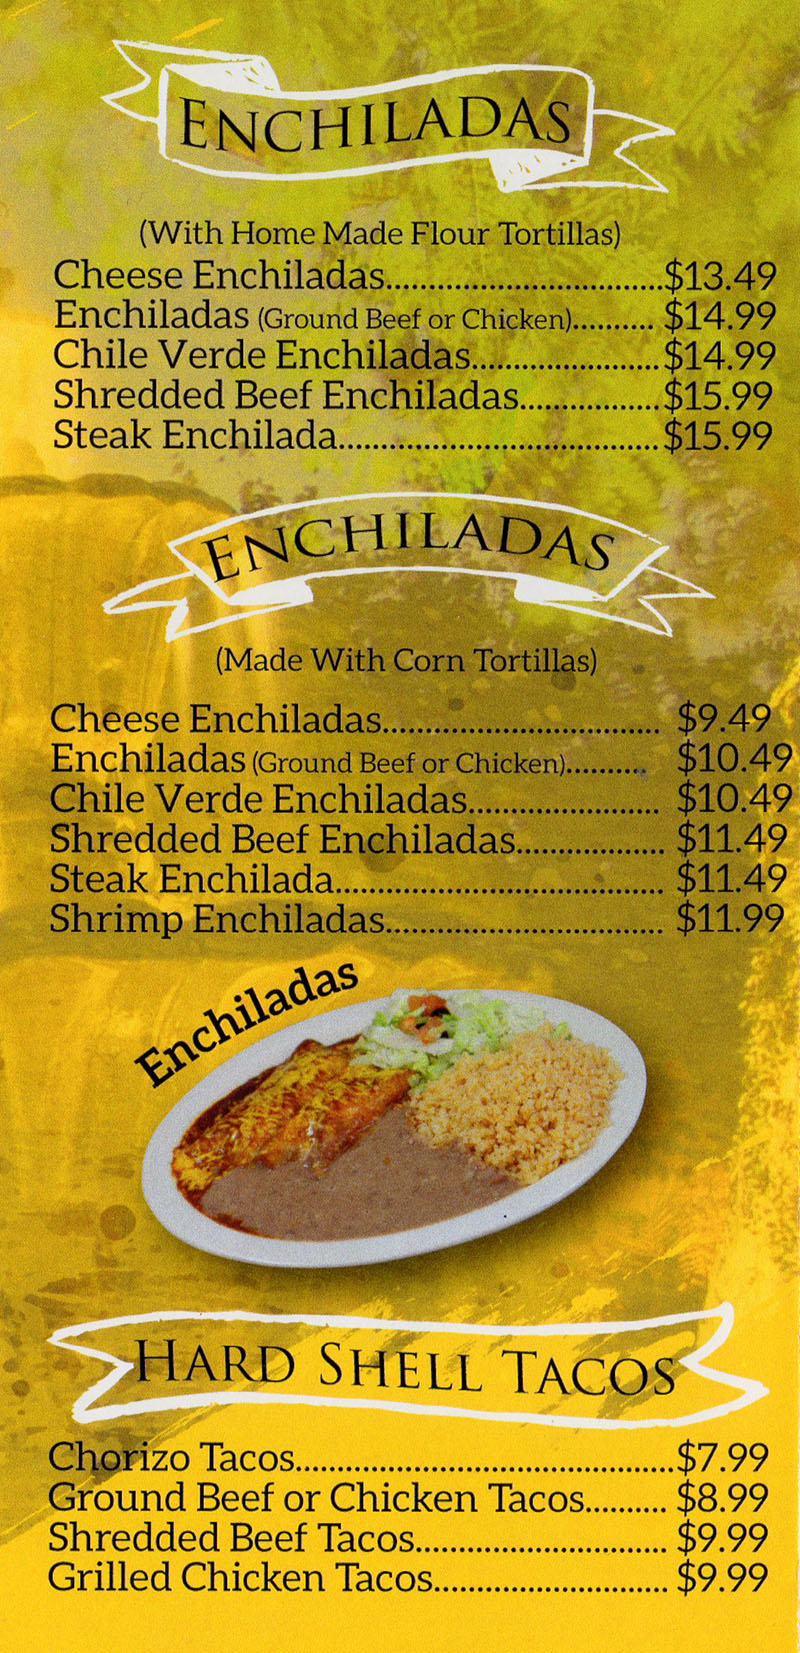 La Fountain menu - enchiladas, hard shell tacos